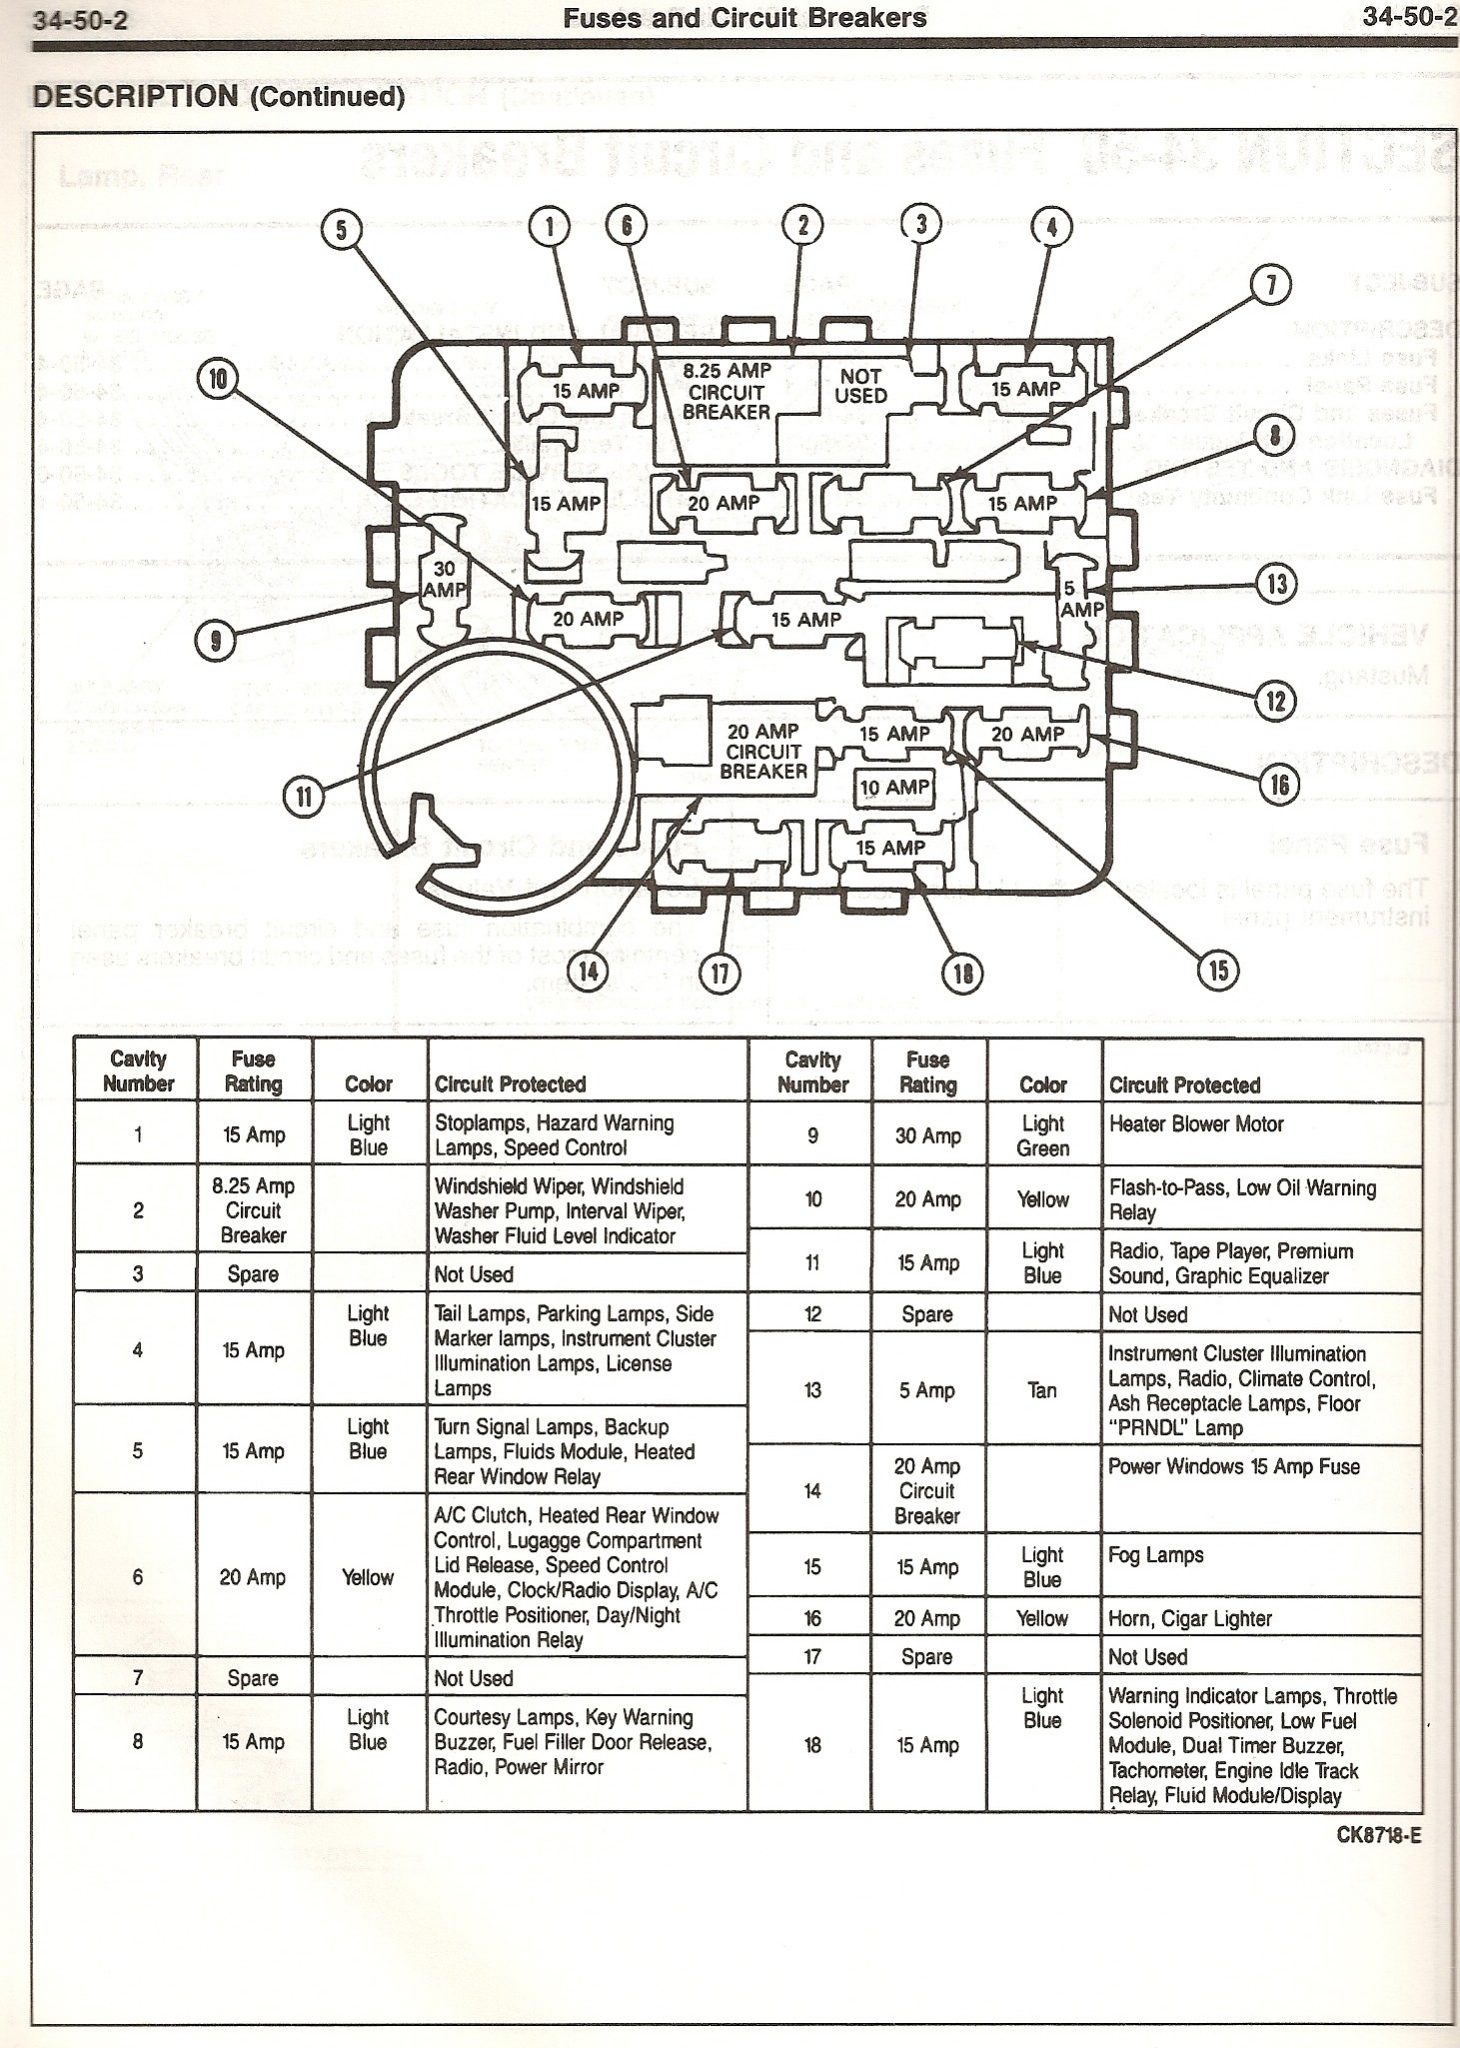 1990 Crown Victoria Fuse Box Diagram Trusted Wiring Diagram 2001 Crown  Victoria Radio Wiring Diagram 1990 Ford Crown Vic Wiring Diagram